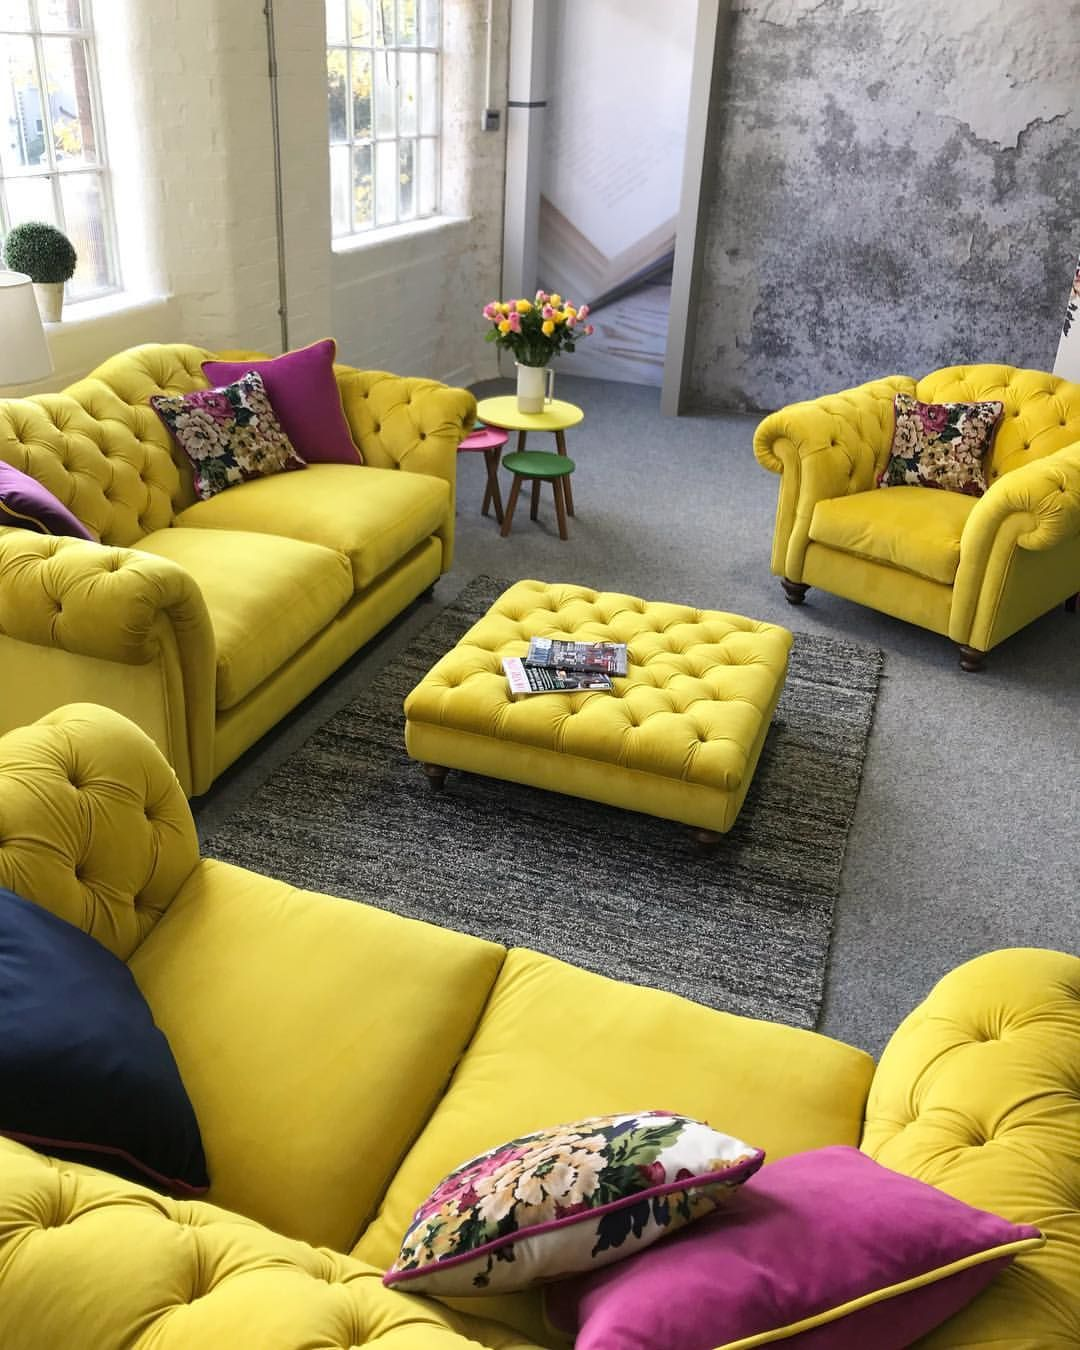 Joules Sofas Colourful Living Room Decor Sofa Design Colourful